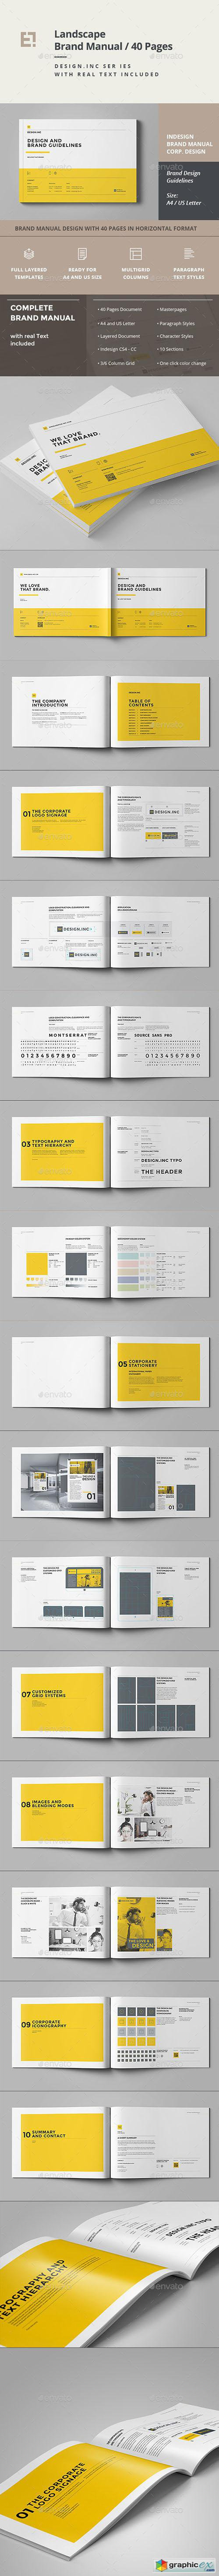 Brand Manual 40 Pages